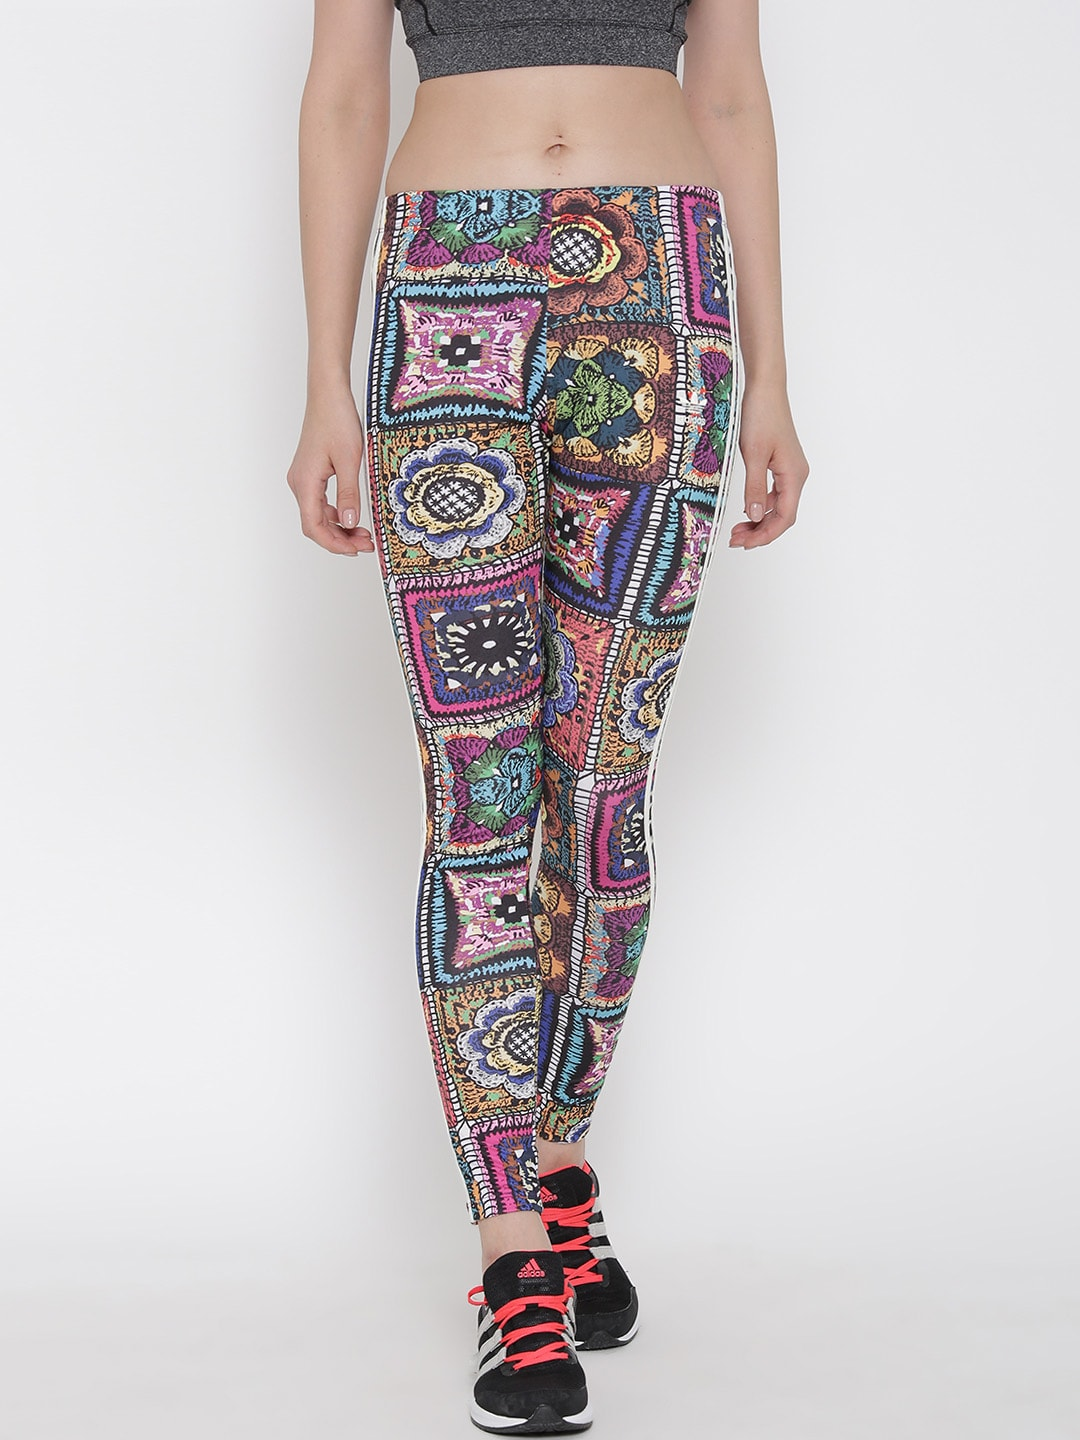 a0e3e9f2688623 Adidas originals ay6845 Multicoloured Crochita Printed Tights - Best ...